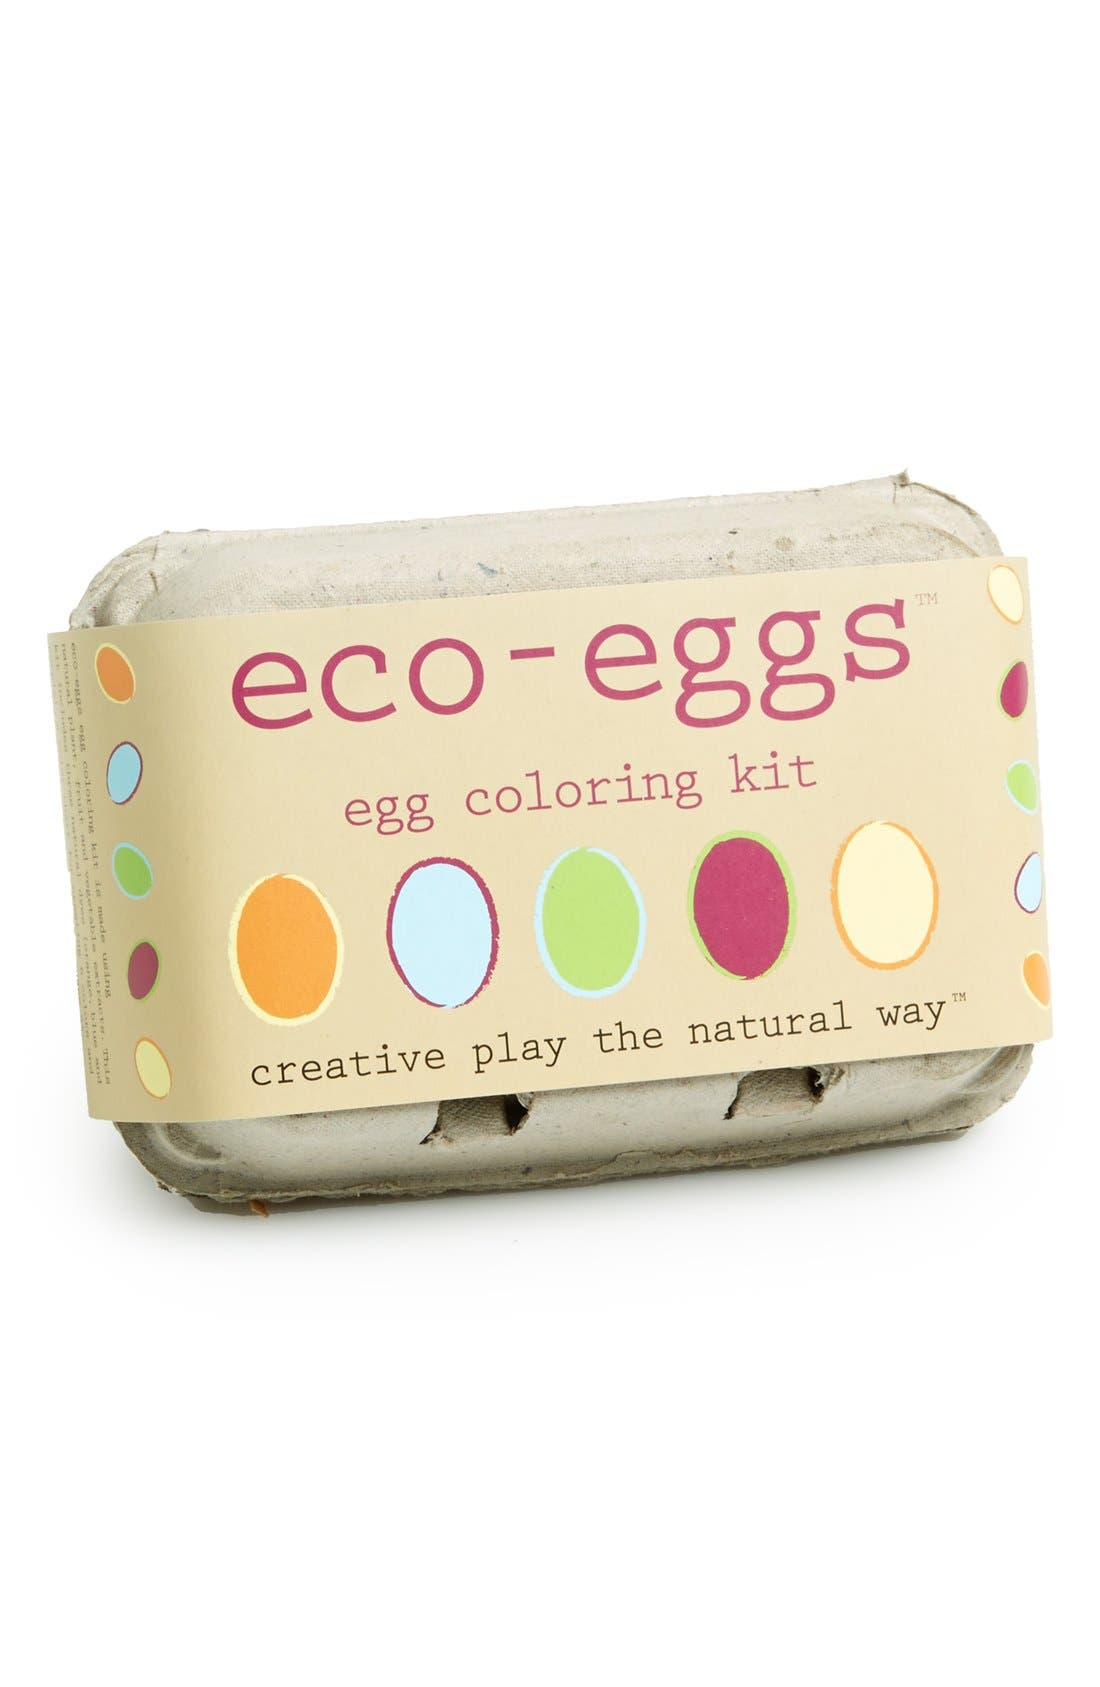 Alternate Image 1 Selected - Eco Kids 'Eco-Eggs' Egg Coloring Kit